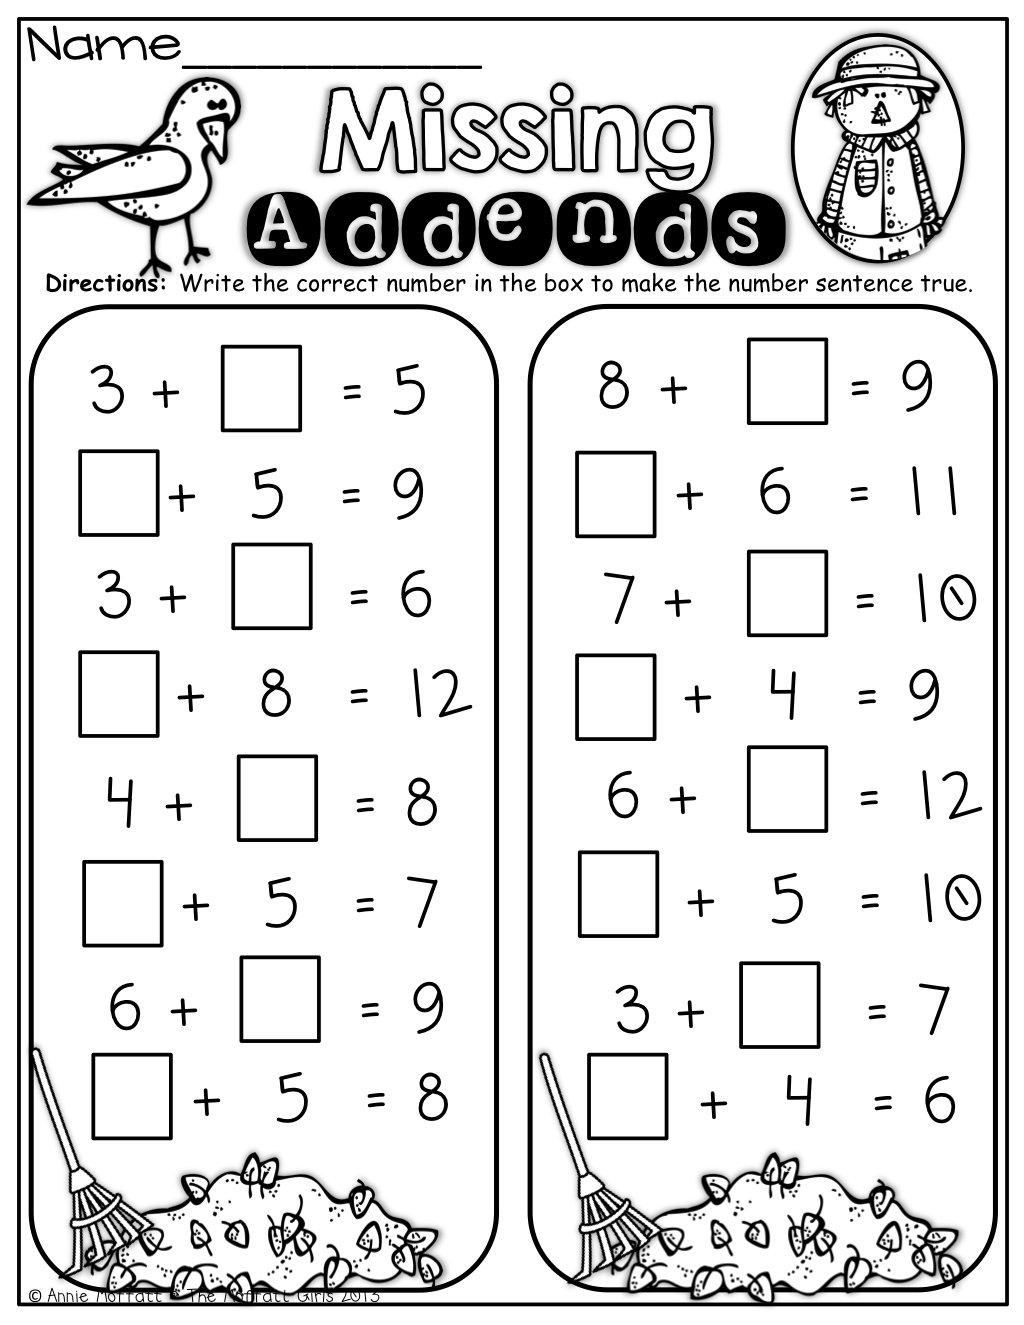 Worksheet Math Addends 17 best images about math missing addends on pinterest equation pirates and common cores